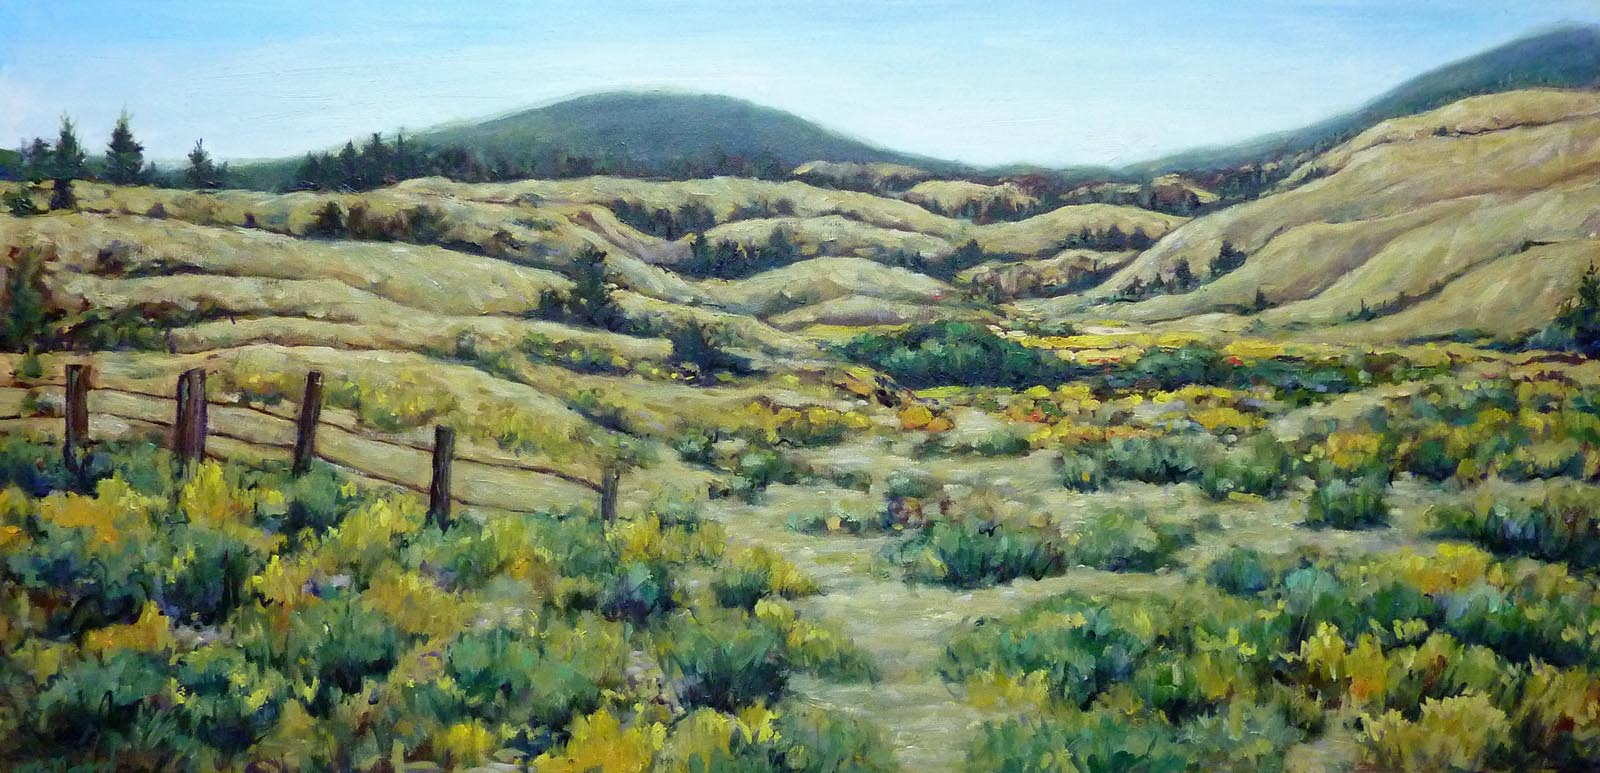 sagebrush and time | Landscapes of British Columbia | Artist painter Kim Pollard | Canada | Pacific Northwest